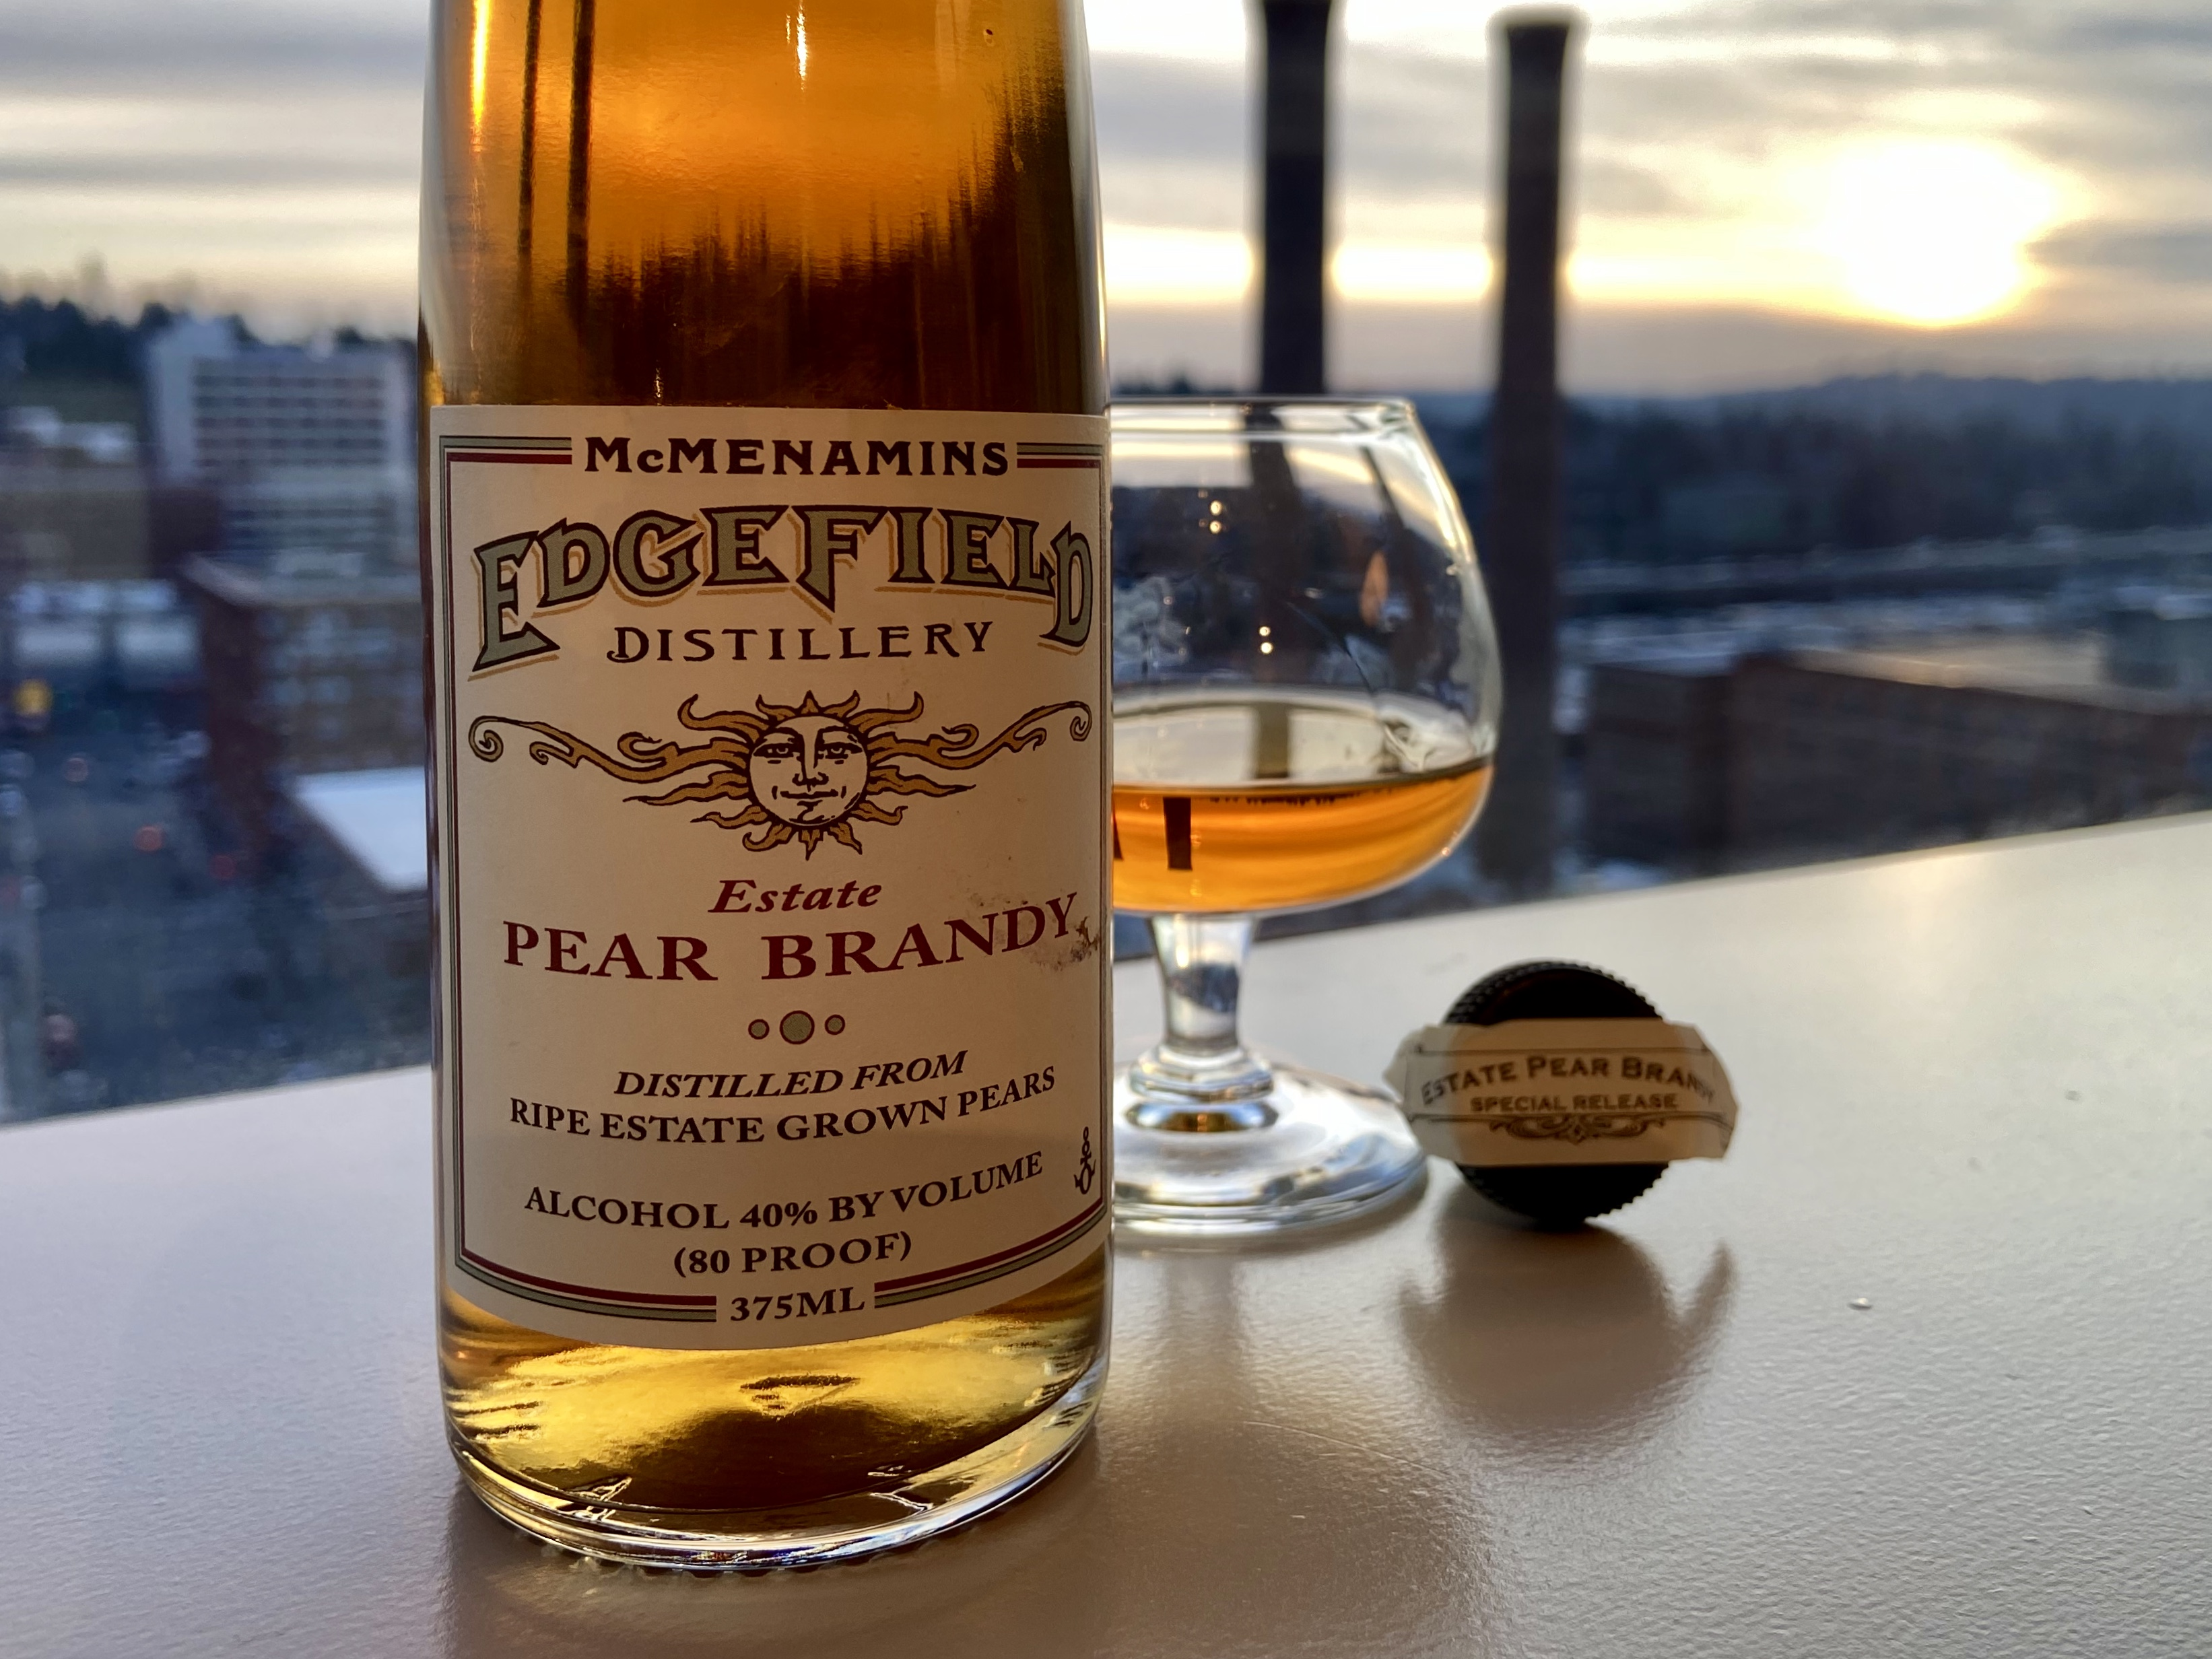 McMenamins Edgefield Distillery Estate Pear Brandy is an 80 proof spirit made with pears grown at Edgefield.